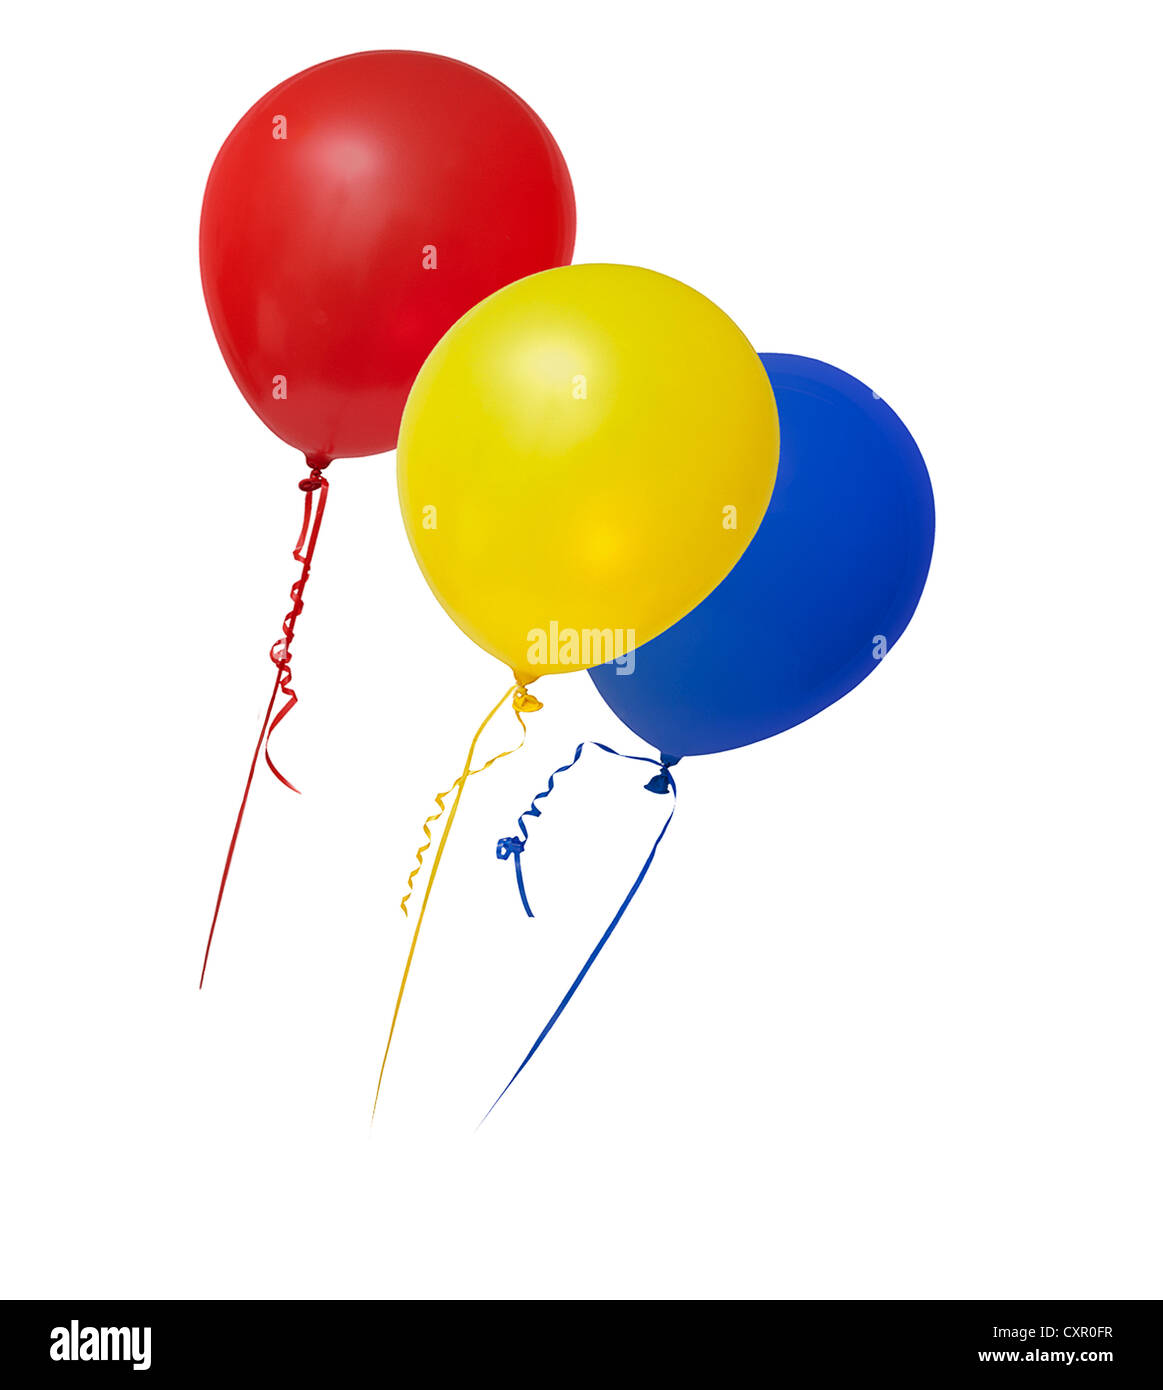 Ballon Bilder Balloons Stockfotos And Balloons Bilder Alamy